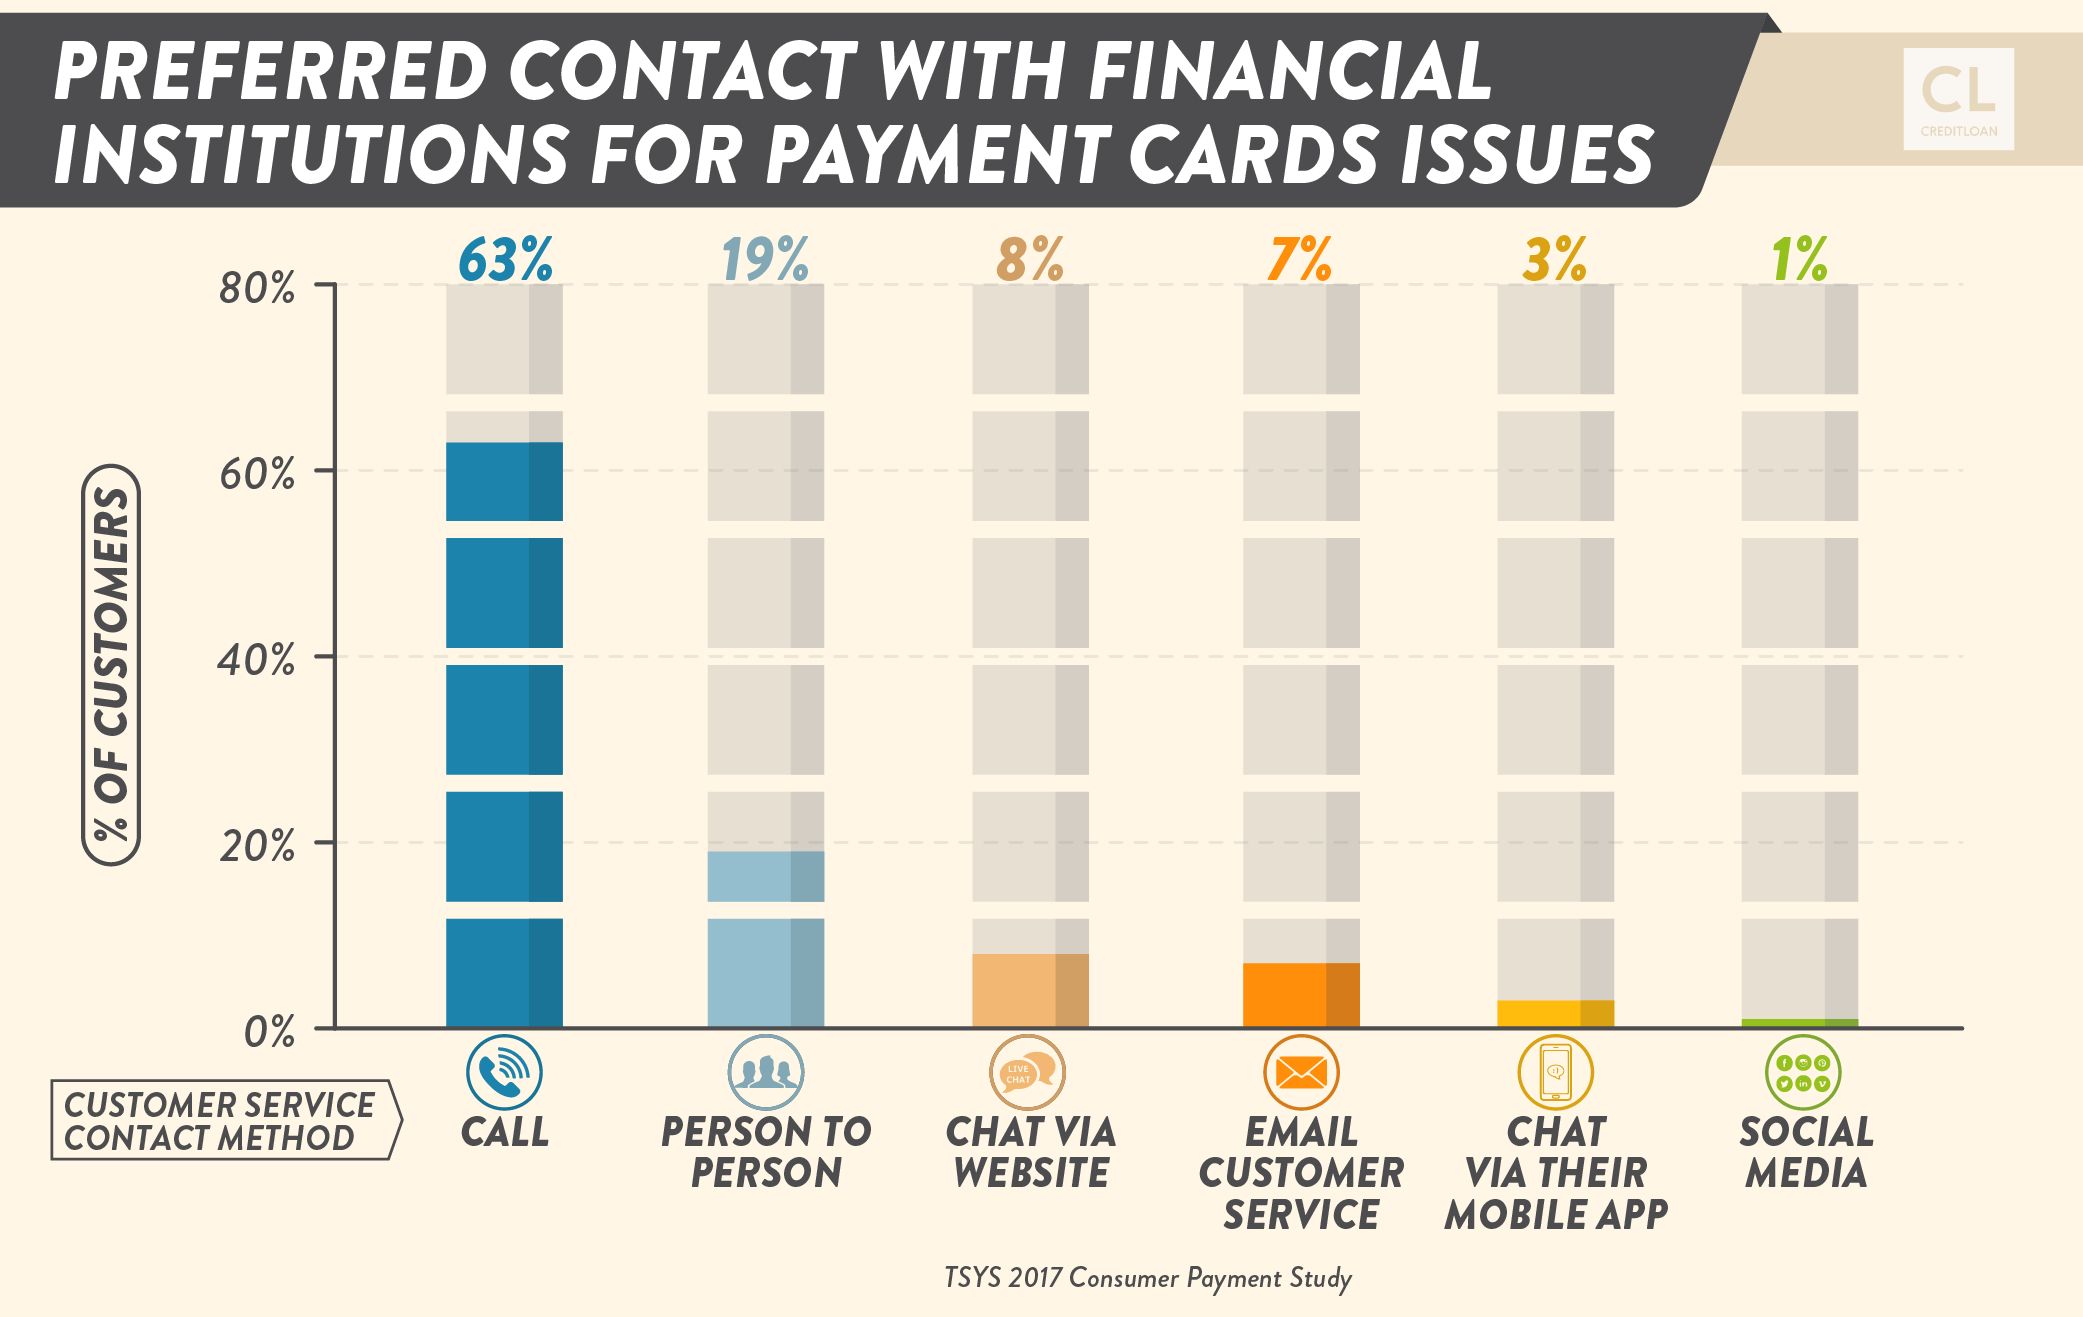 Preferred Contact With Financial Institutions for Payment Cards Issues